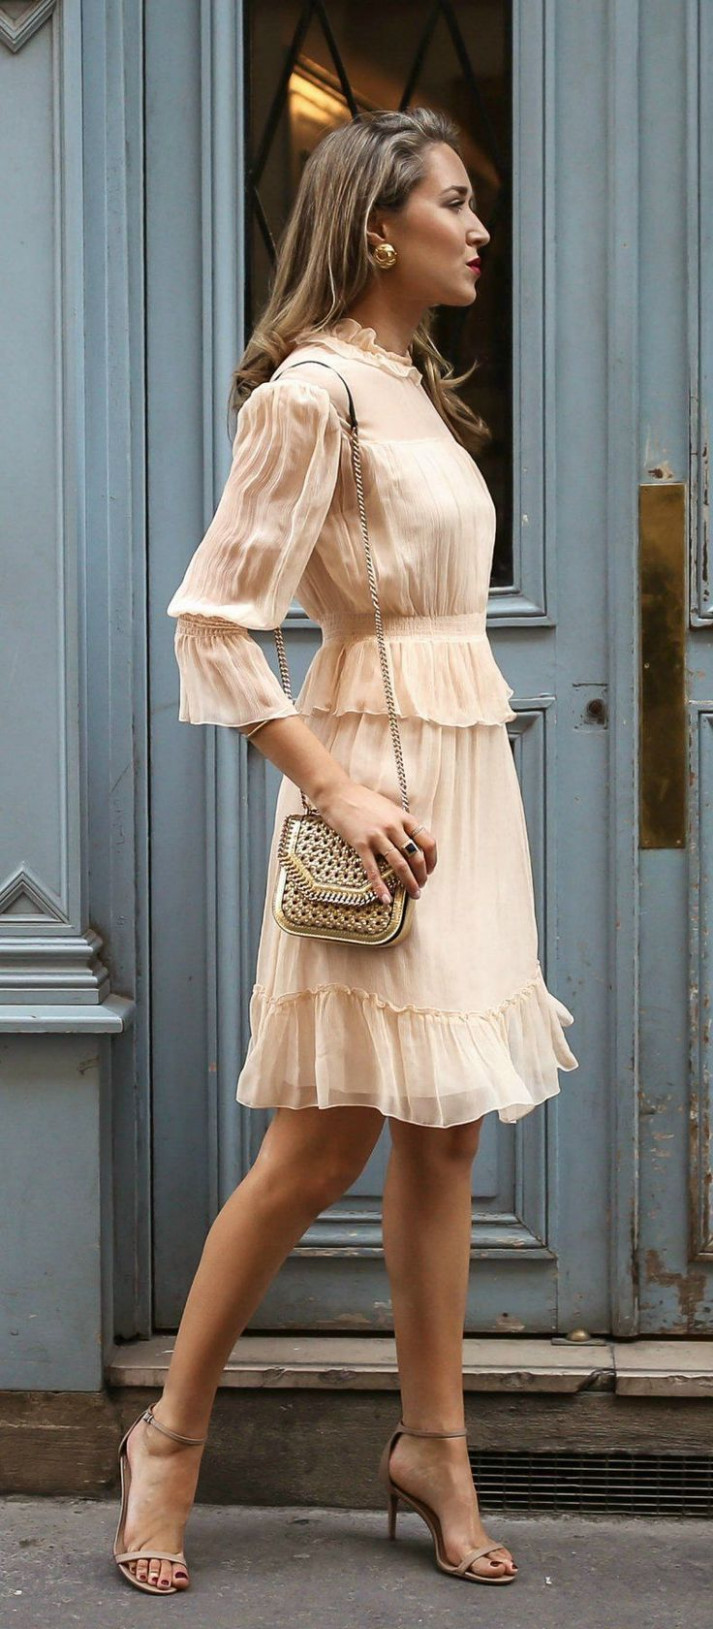 Pin Auf Dresses Casual Outfit Für Taufe